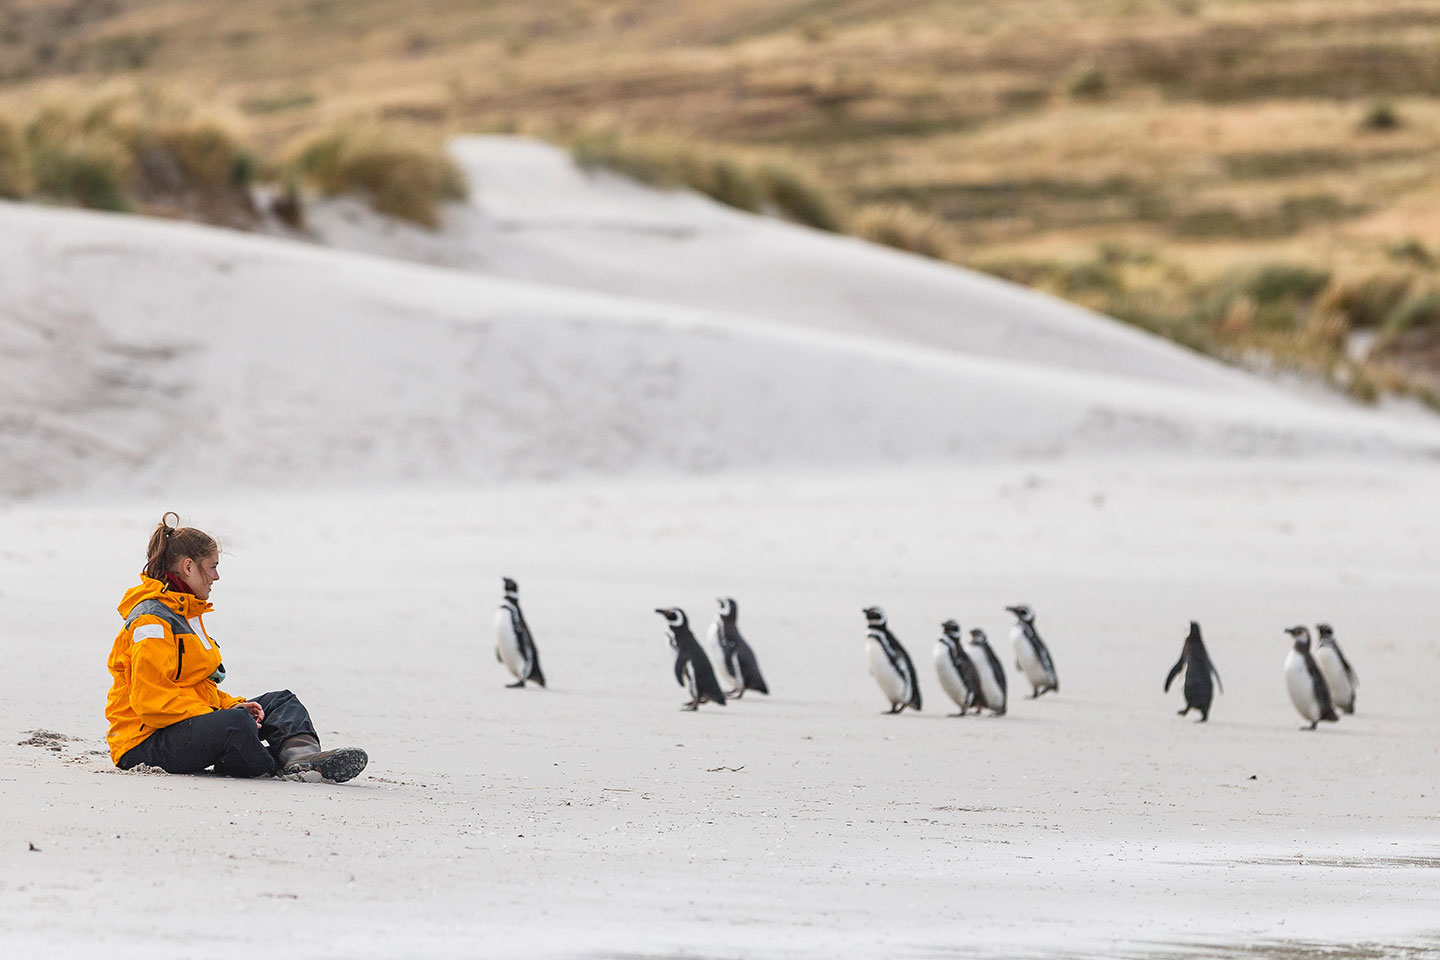 Here, a Quark Expeditions guest patiently waits for the penguins to come to her